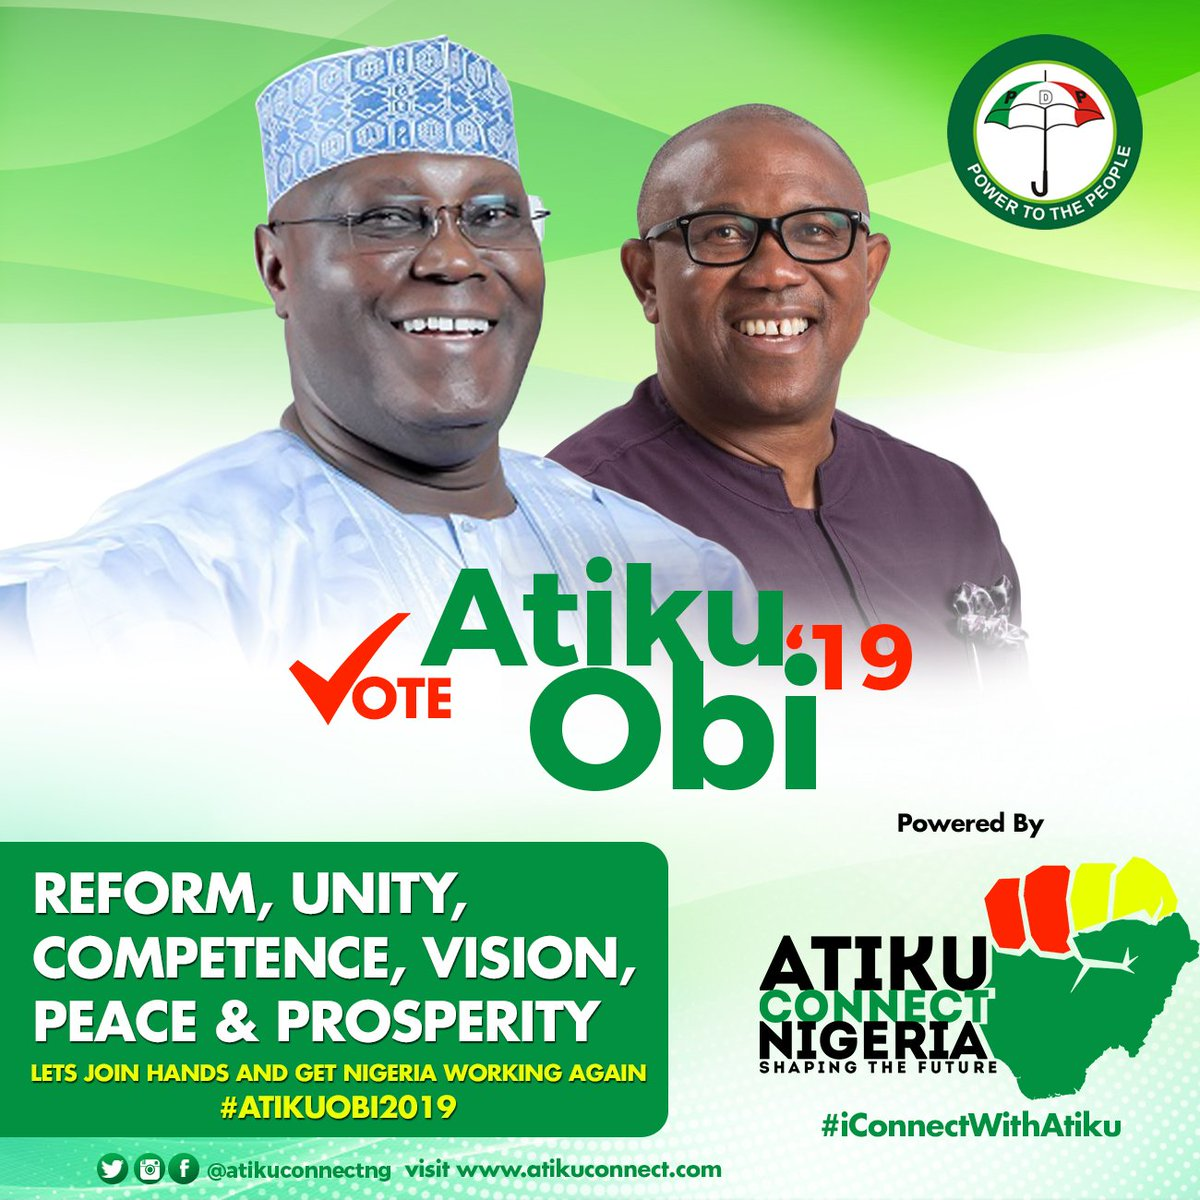 Don't be deceive by the #NextLevel Plan for failure by the APC! Atiku and Obi are the Only Solution to the hideous situations Nigeria is currently going through. Vote for Unity, Vote for Competence, Vision, Peace and Prosperity. Vote PDP! Vote Atiku-Obi come 2019! #AtikuConnect <br>http://pic.twitter.com/1GpFnevXUt